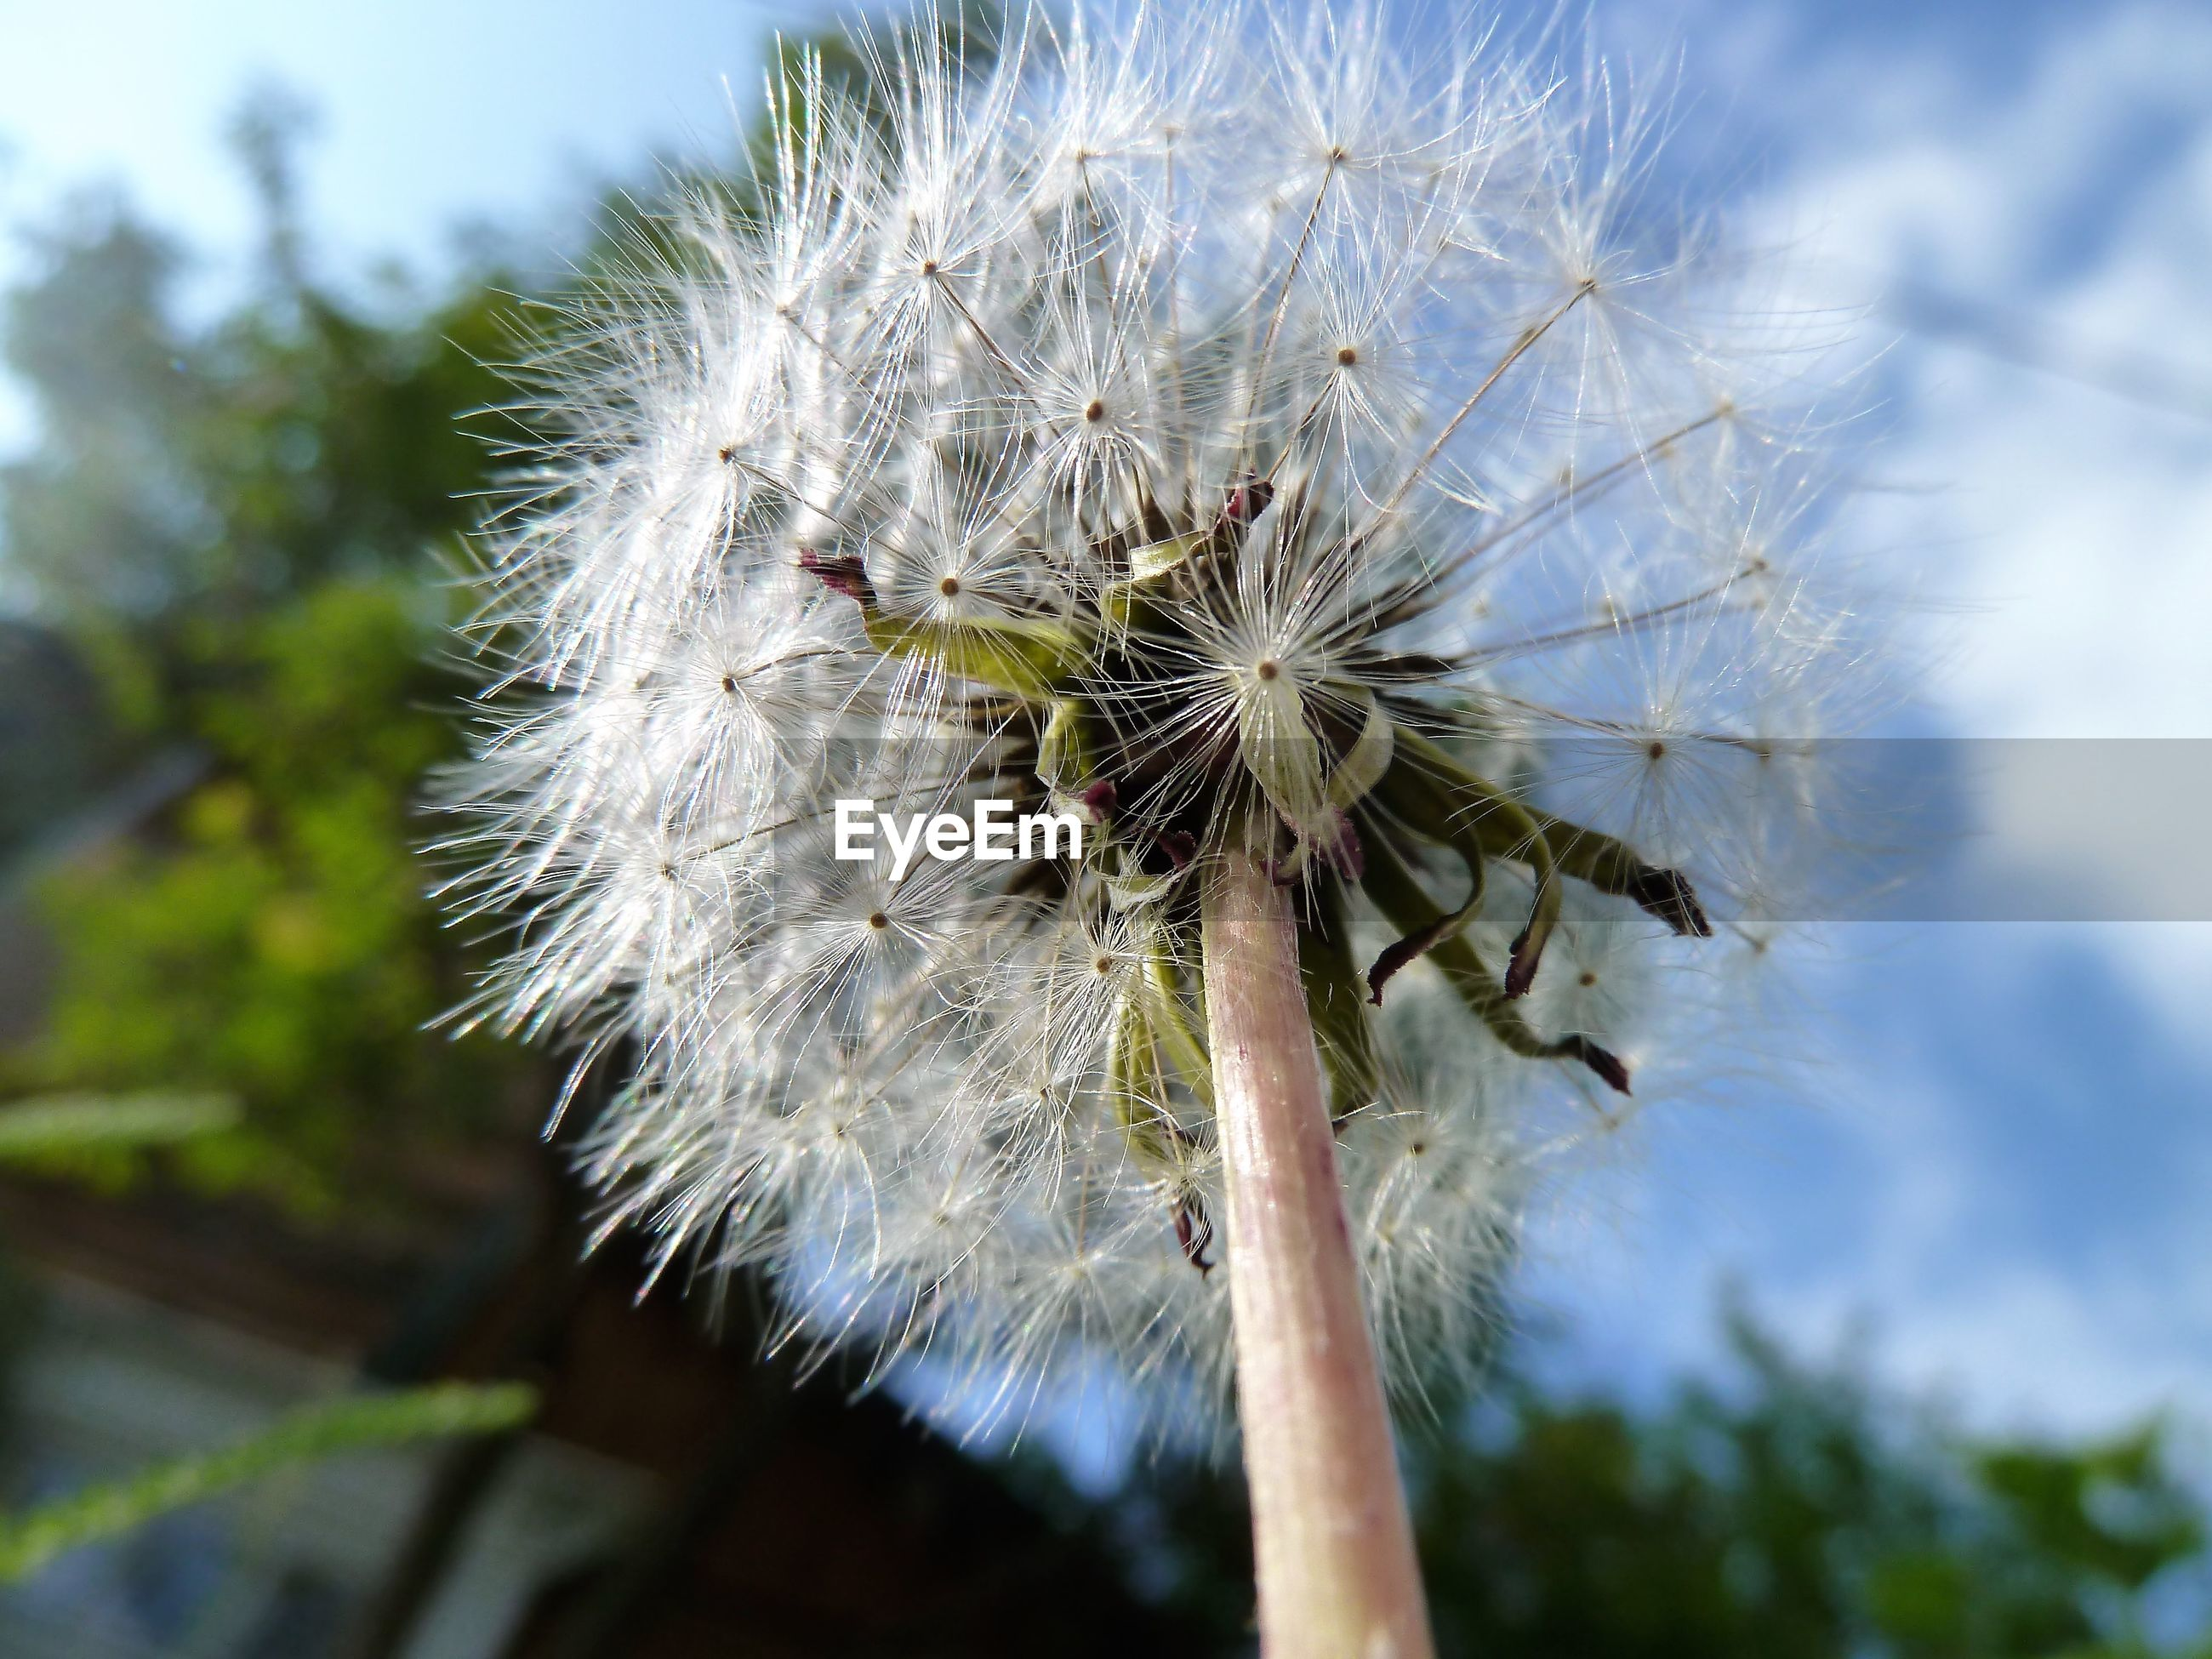 LOW ANGLE VIEW OF DANDELION ON TREE AGAINST SKY